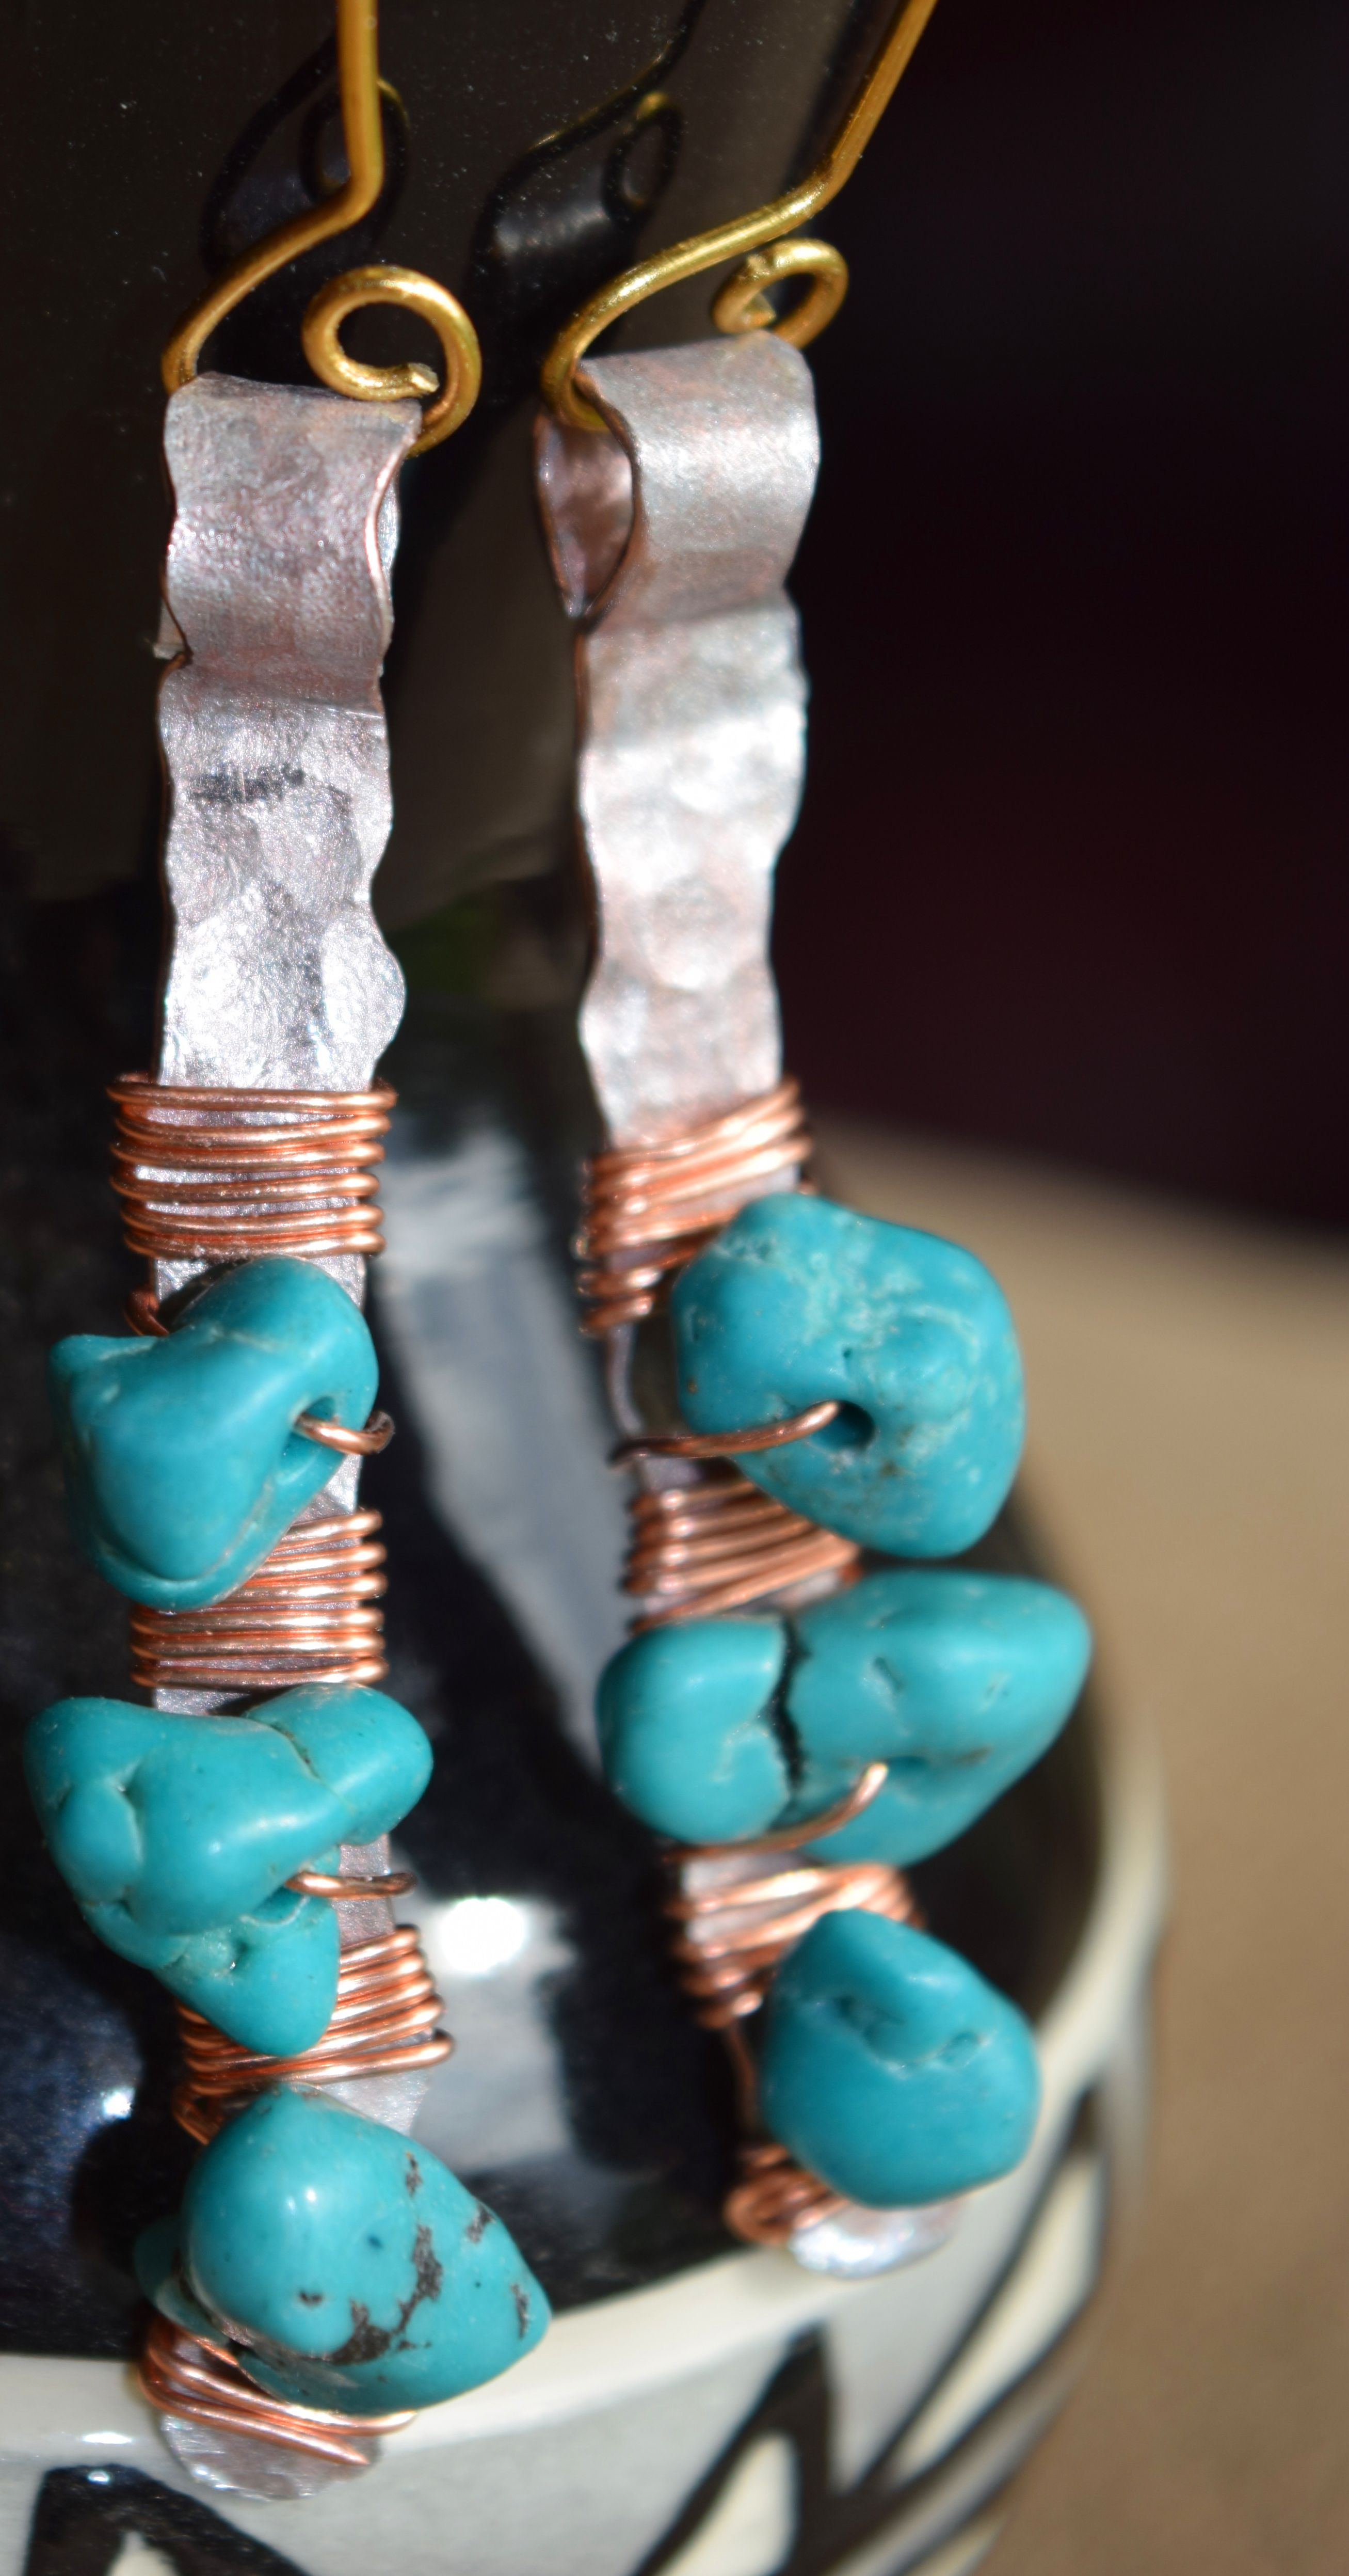 Hammered Copper over Aluminium with Turquoise stones